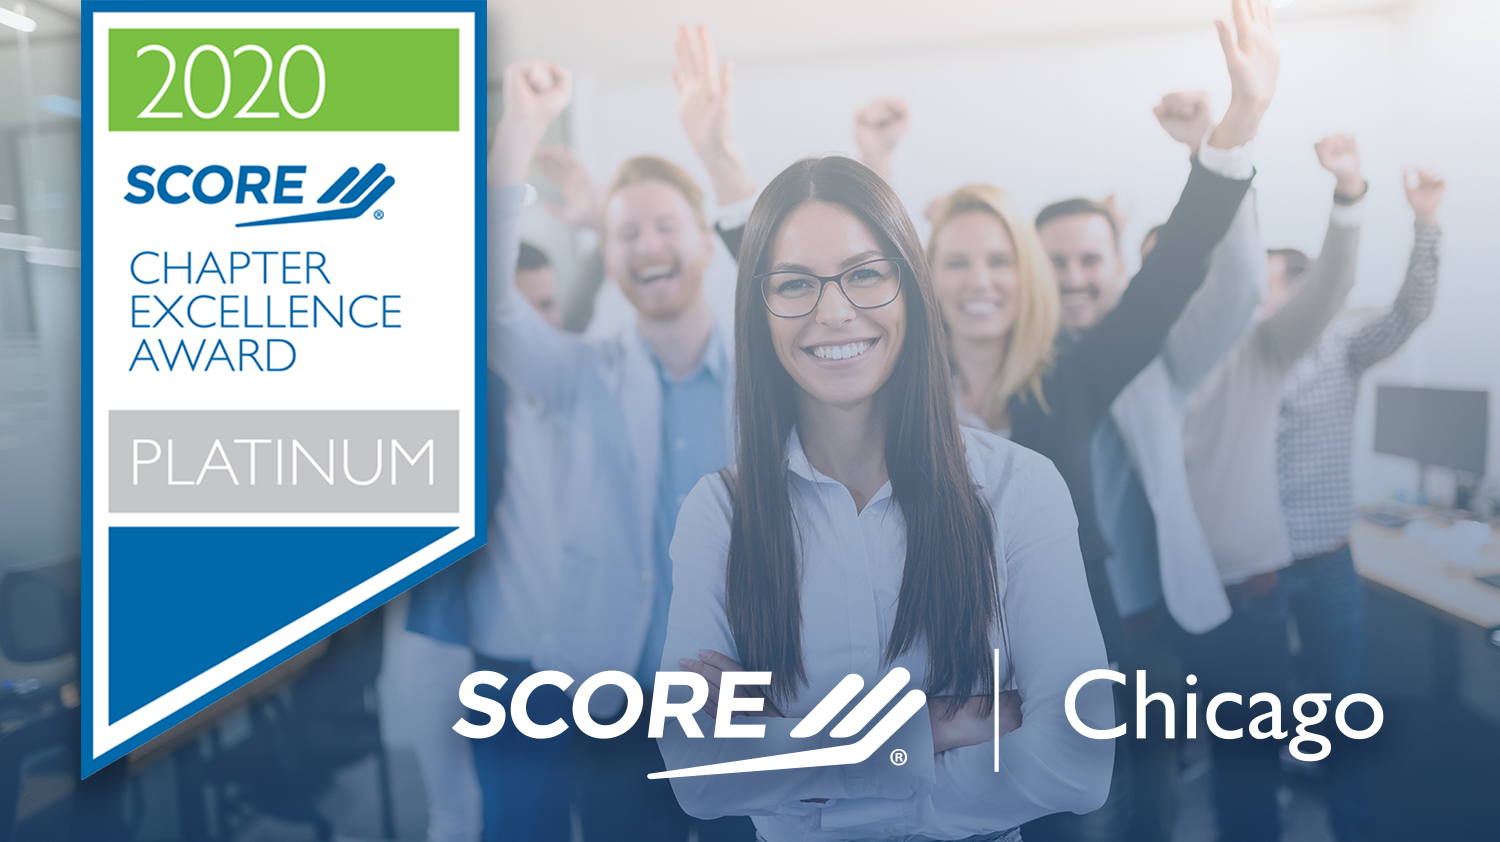 SCORE Chicago Platinum Chapter Excellence Award 2020